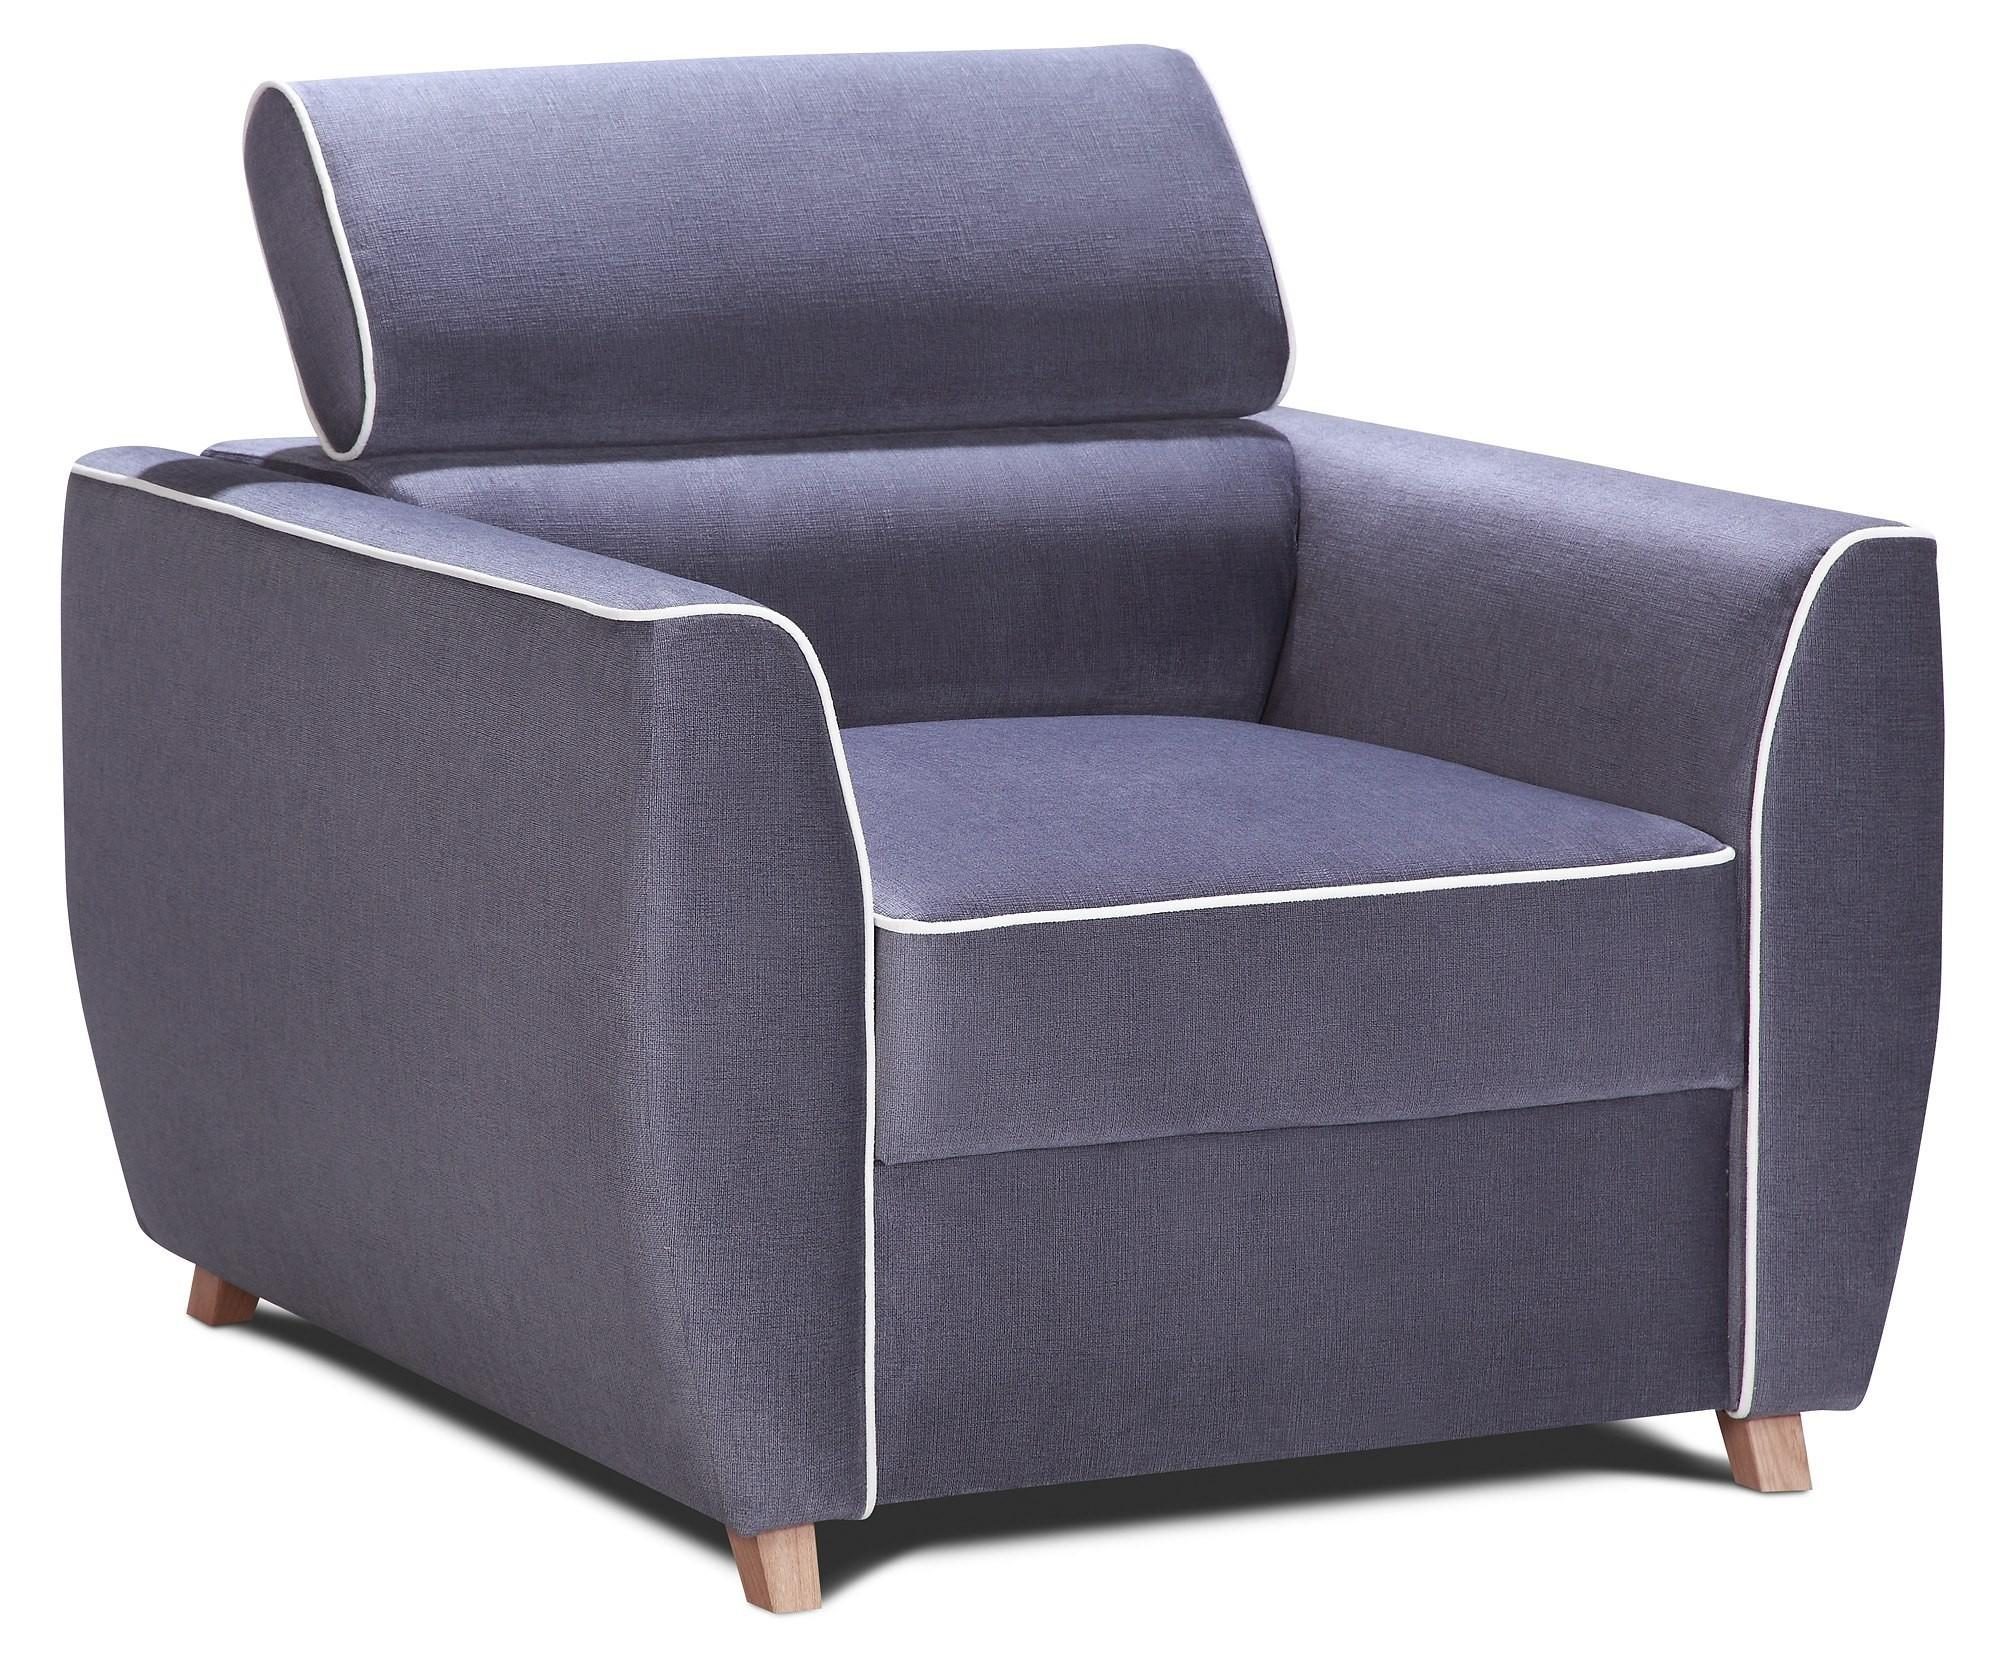 Novel Modern Armchair Sofas Sena Home Furniture